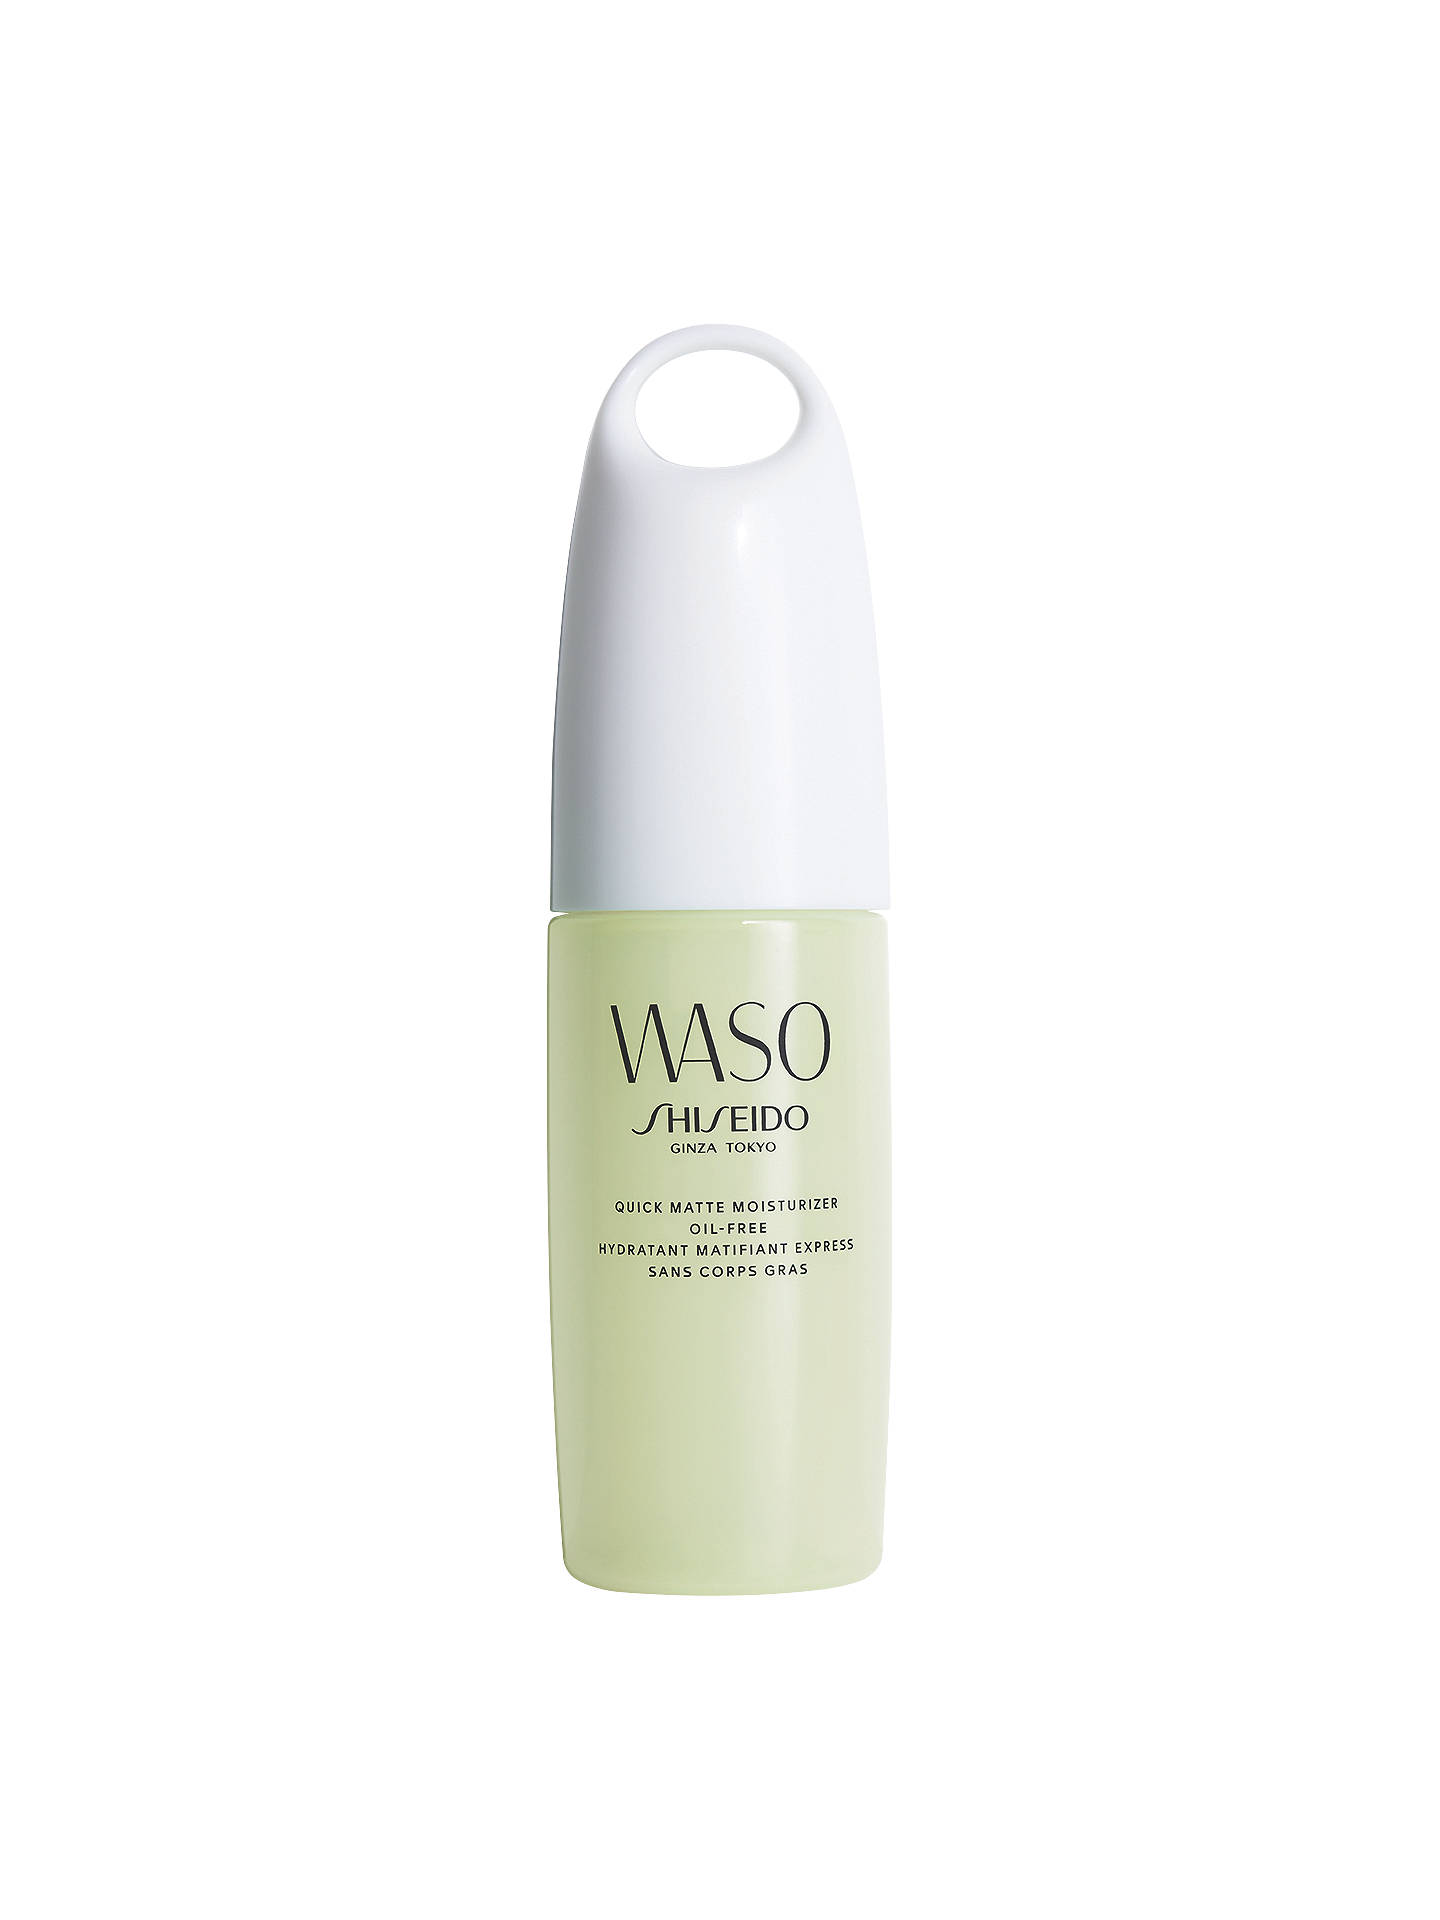 BuyShiseido WASO Quick Matte Moisturiser Oil Free, 75ml Online at johnlewis.com